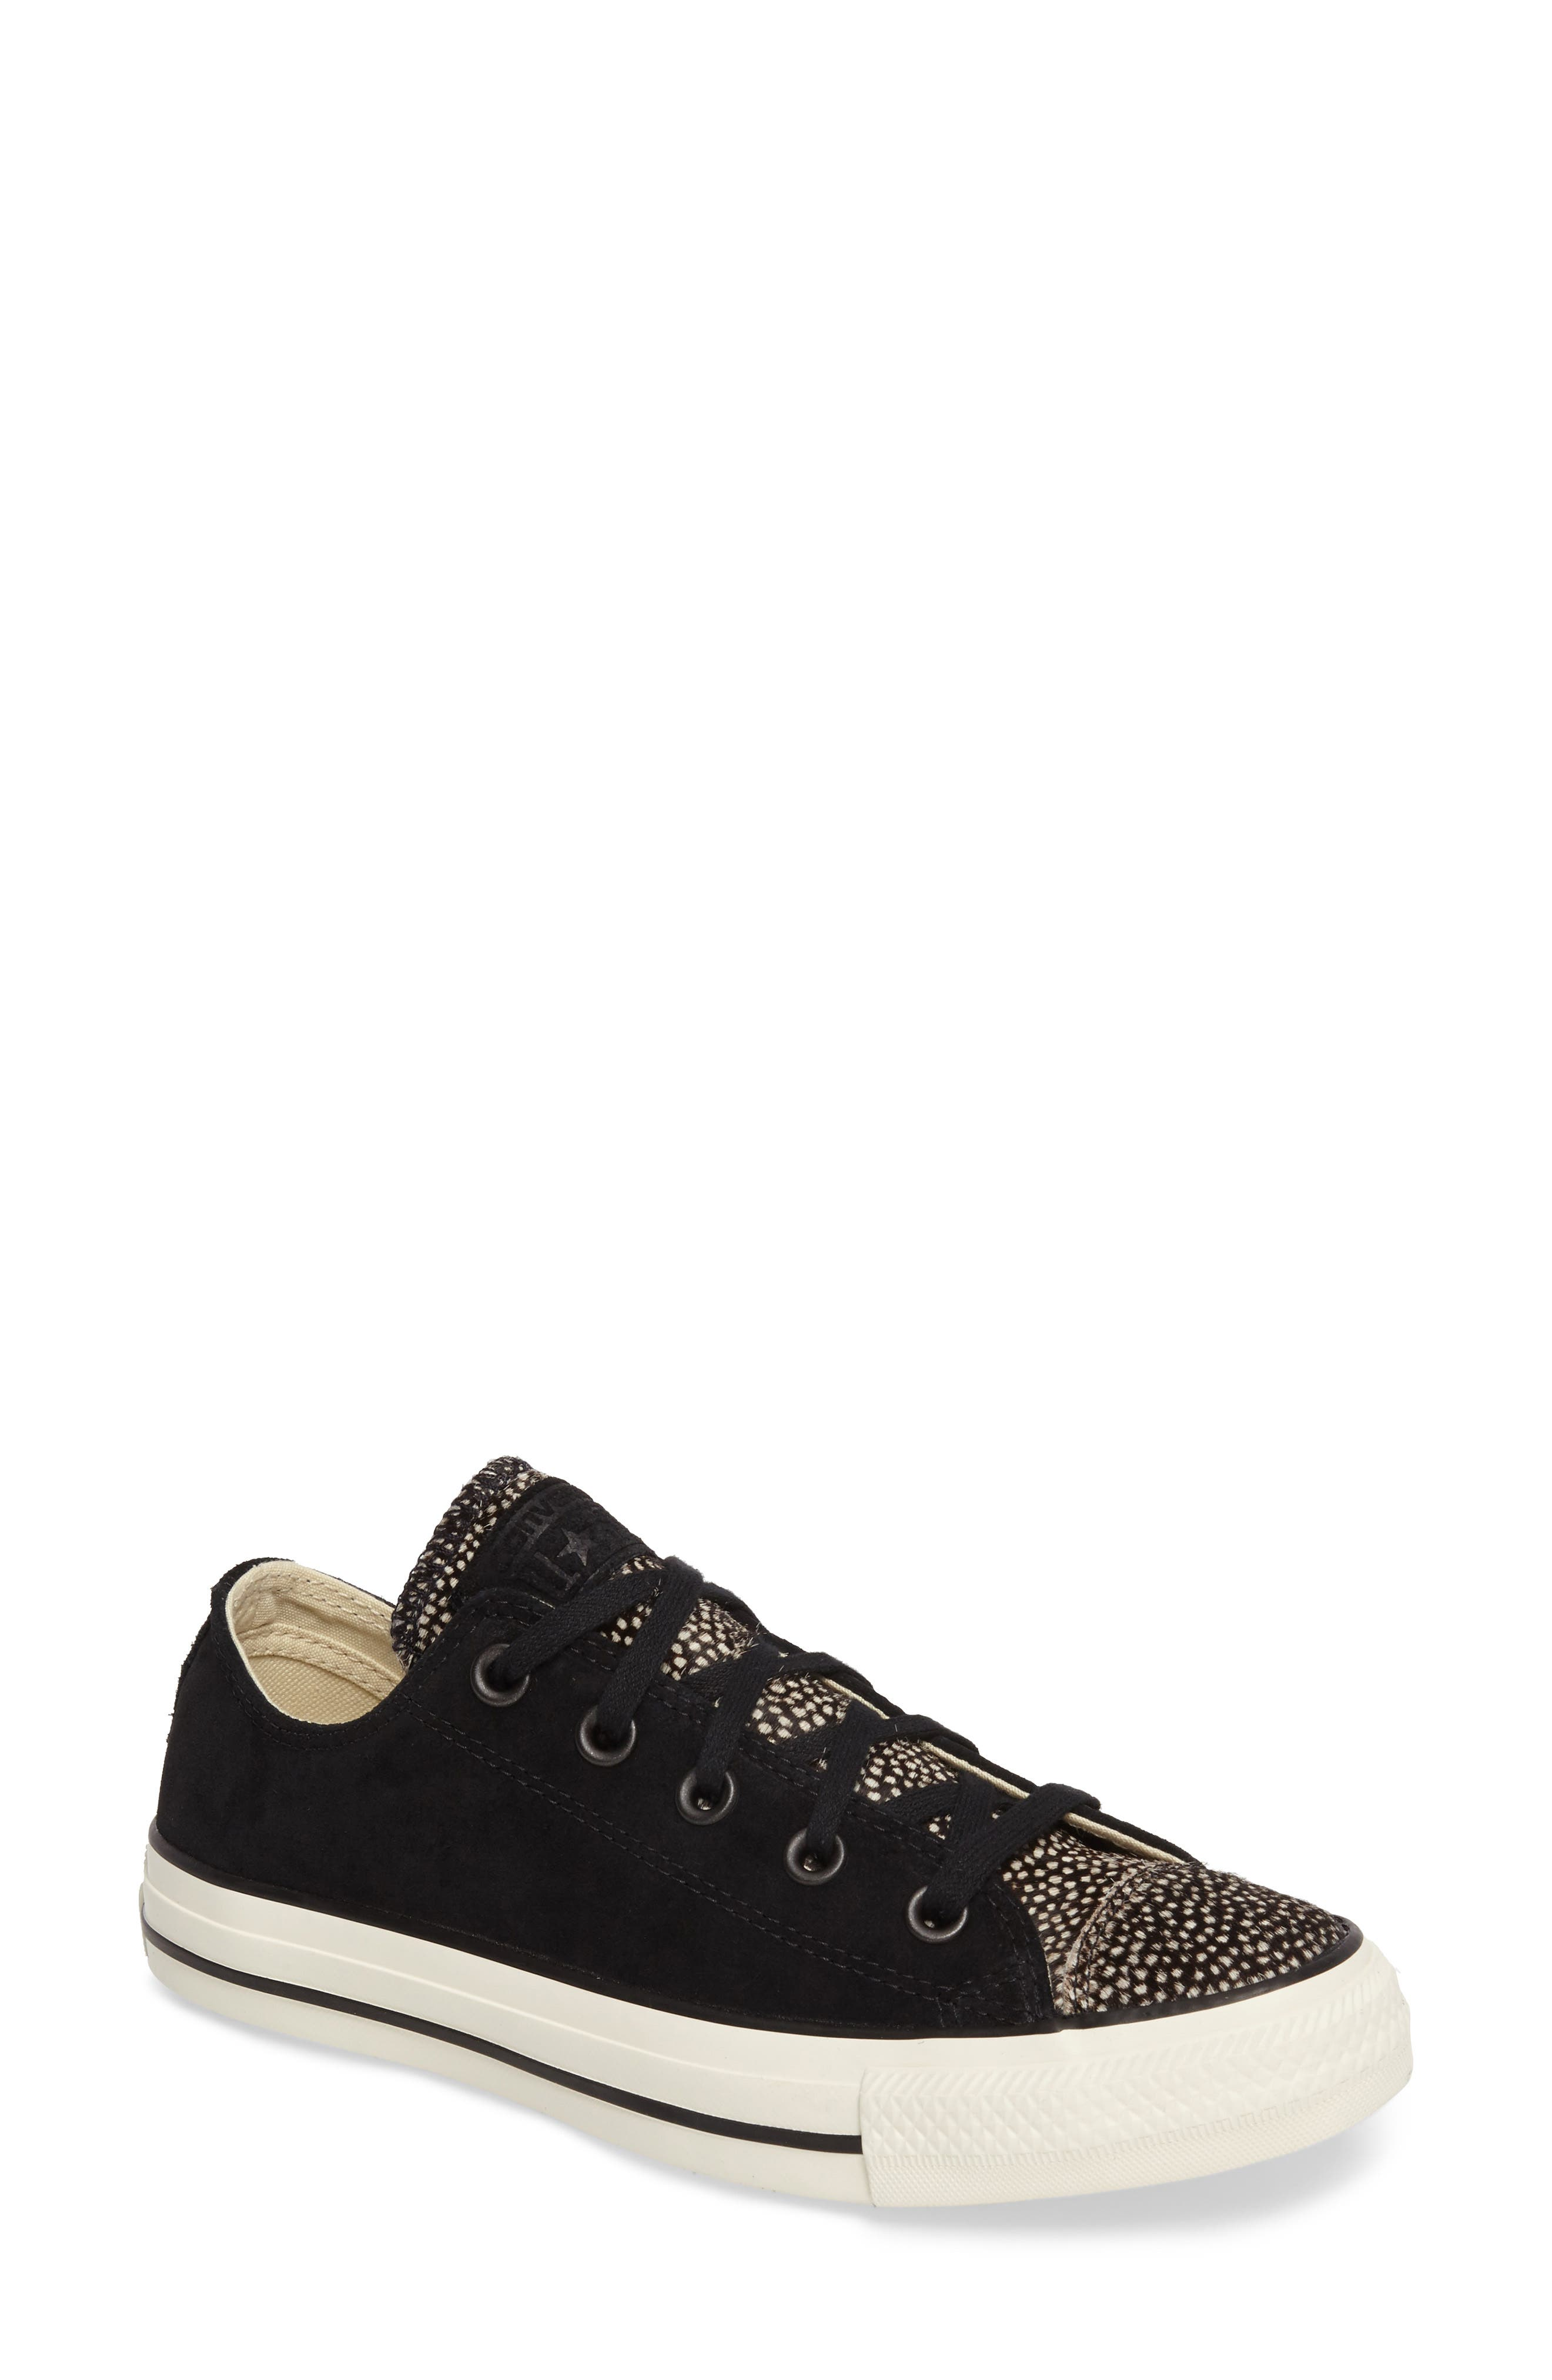 Chuck Taylor<sup>®</sup> All Star<sup>®</sup> Ox Genuine Calf Hair Sneaker,                         Main,                         color, Black